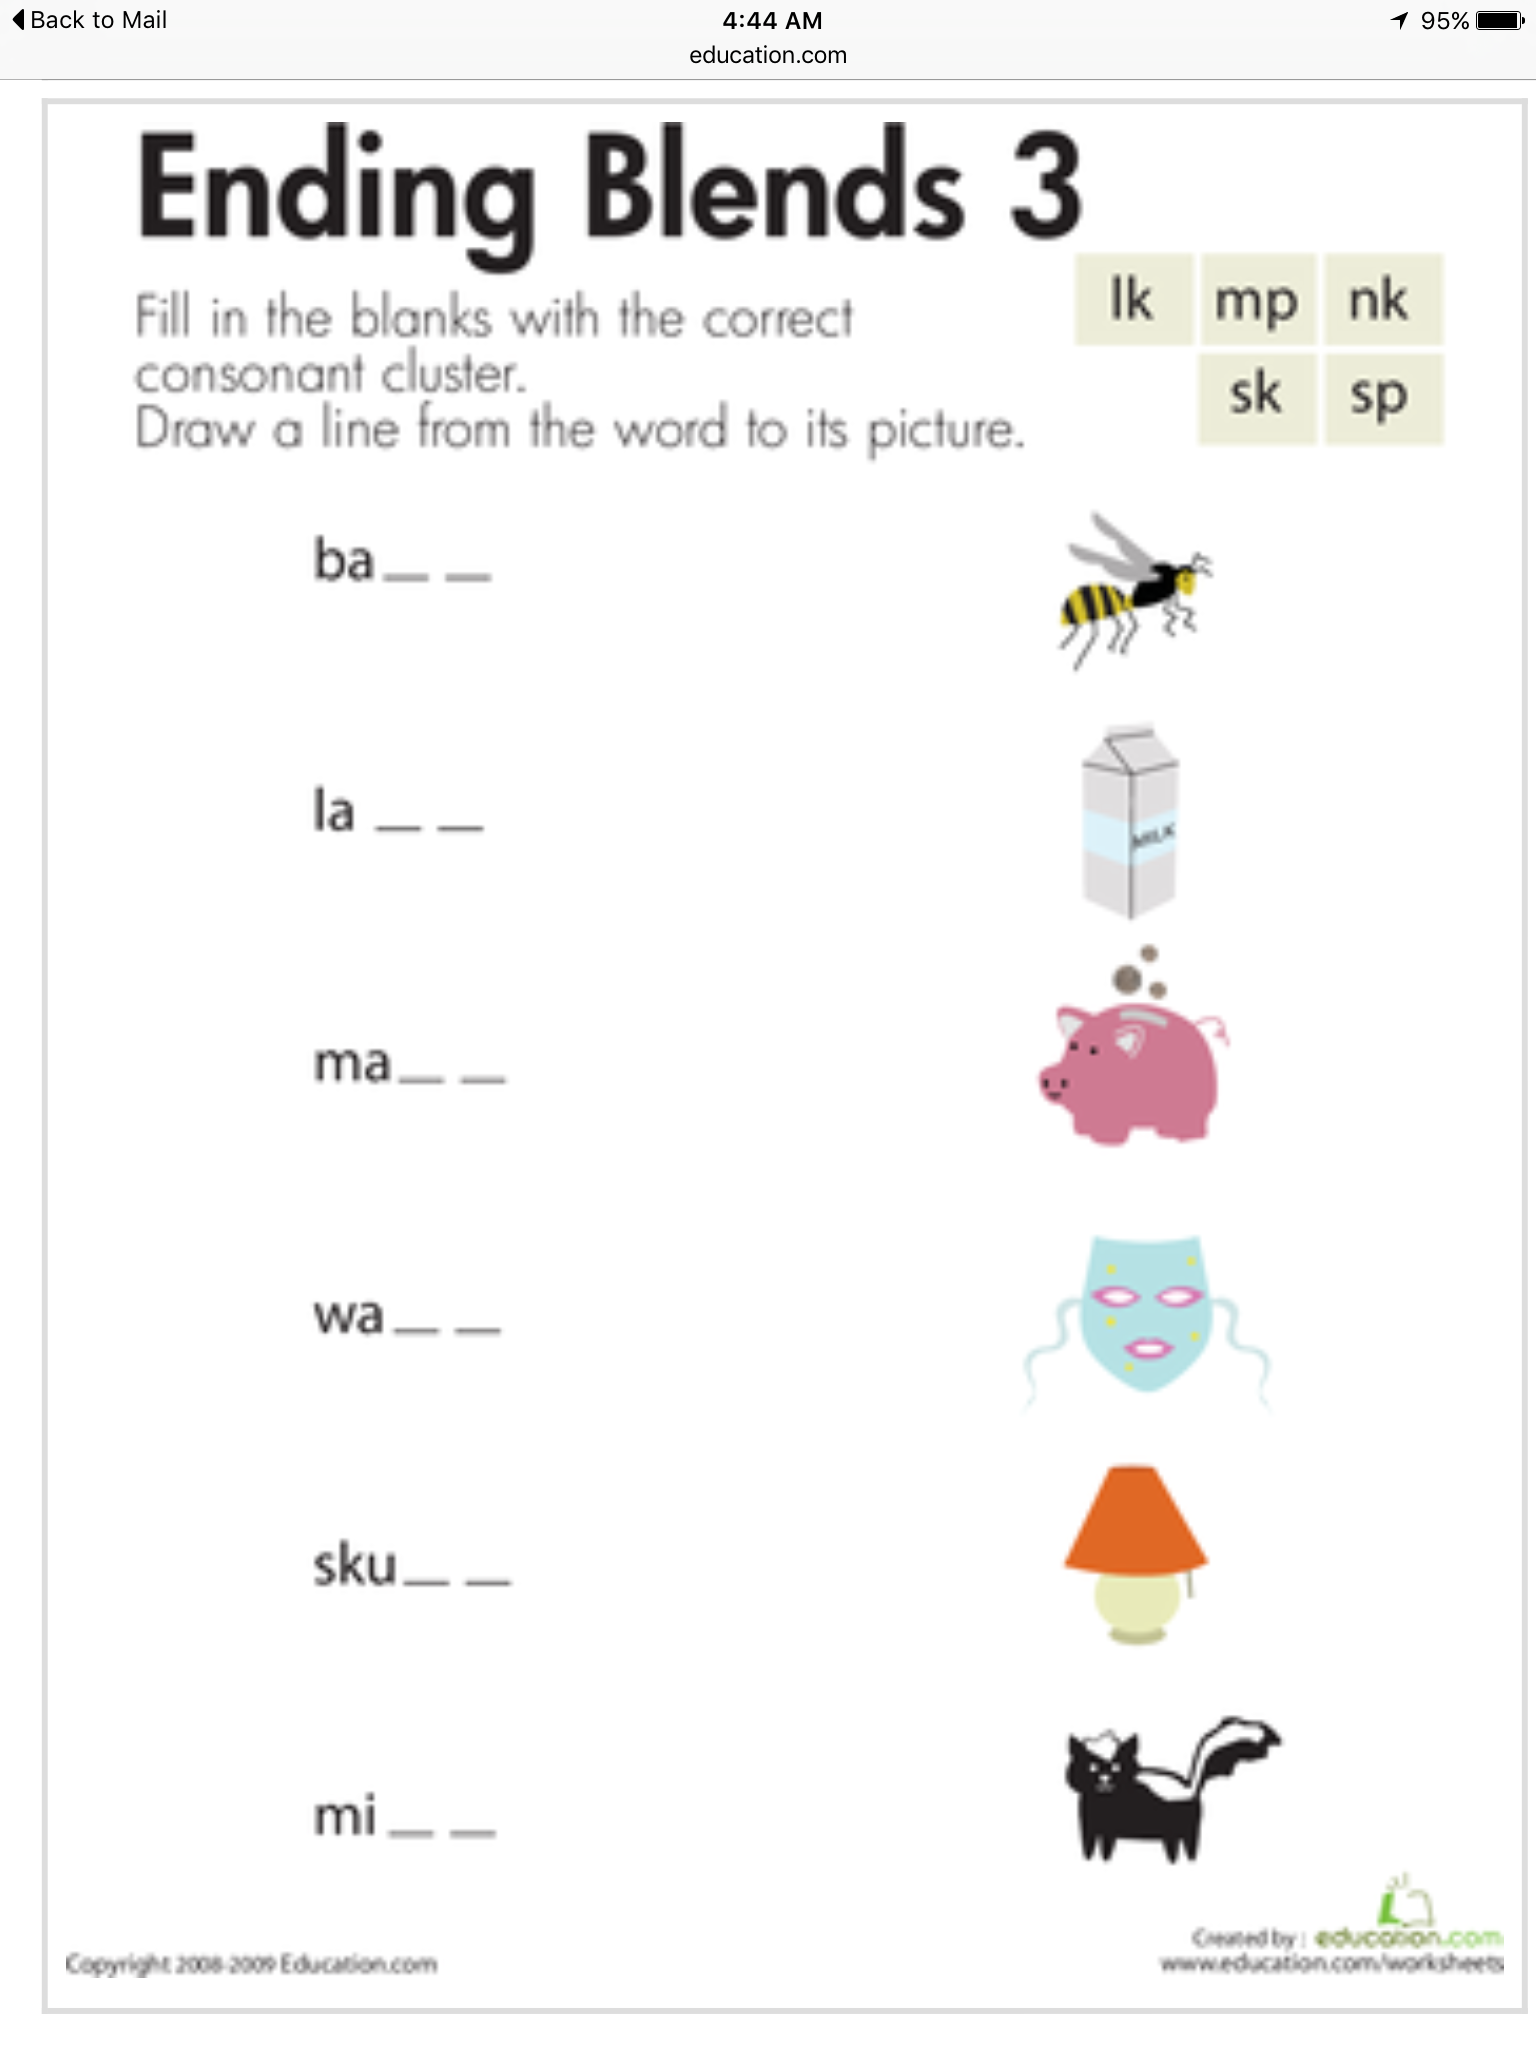 worksheet Ending Blends Worksheets pin by helen creese on speech therapy pinterest the words this first grade reading worksheet are not complete kids choose correct ending blends from boxes and write